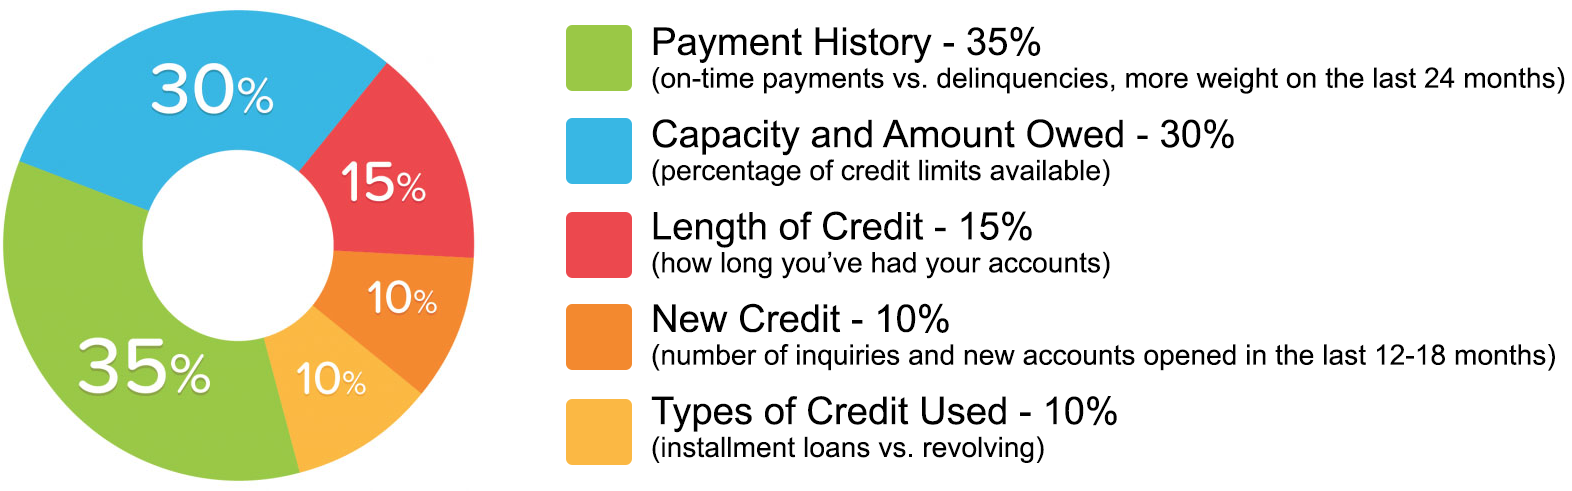 Is 747 A Good Credit Score >> Frazier Consulting Services In Commercial Point OH | Services